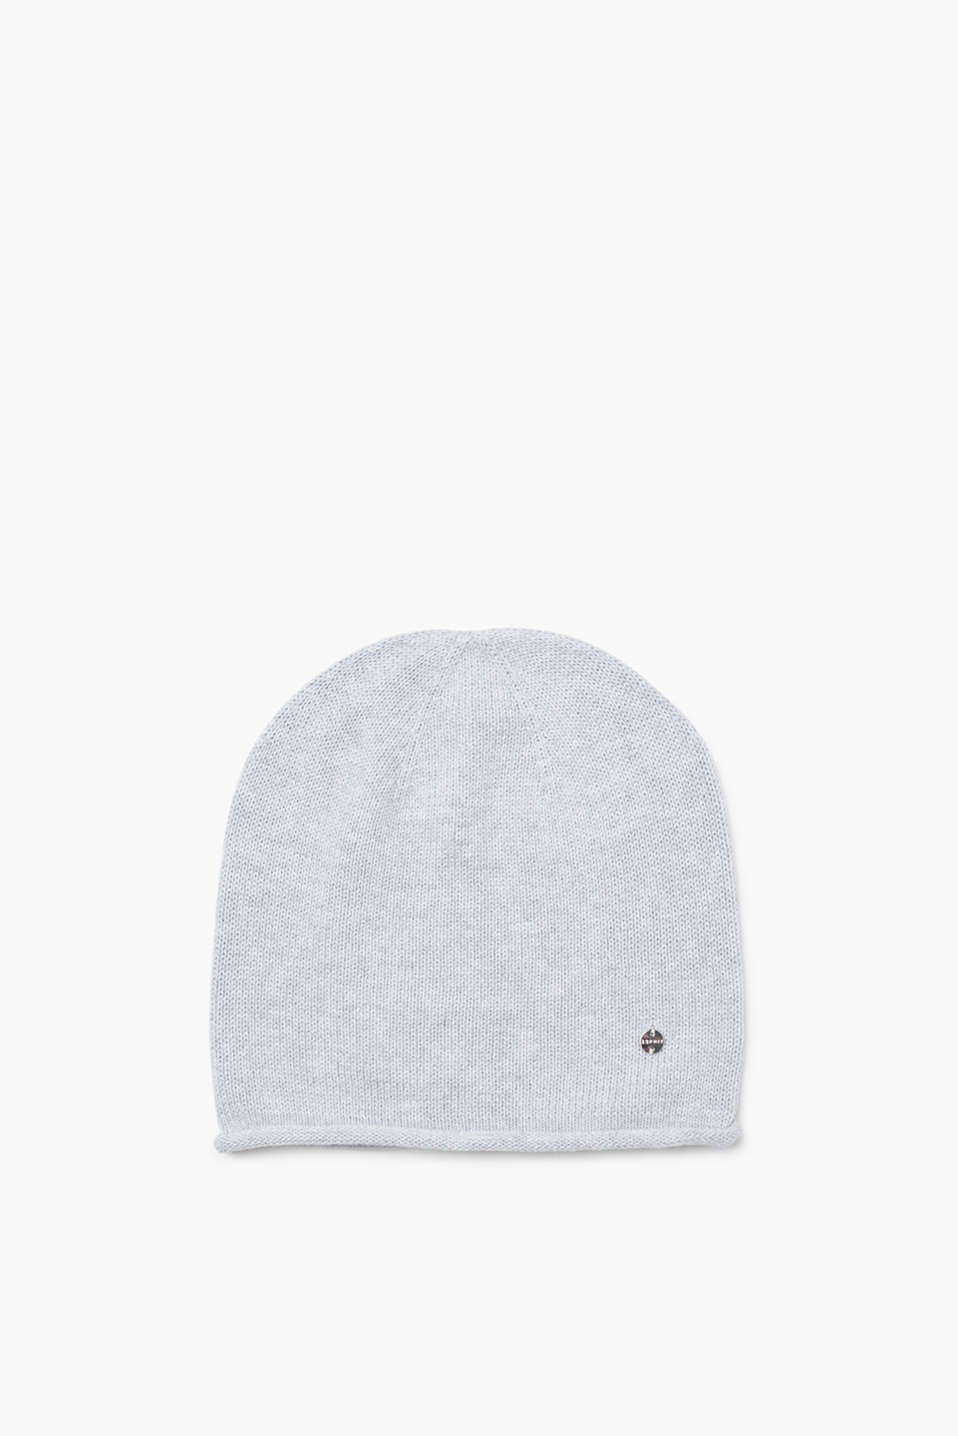 Soft beanie with a rolled edge, 100% cotton